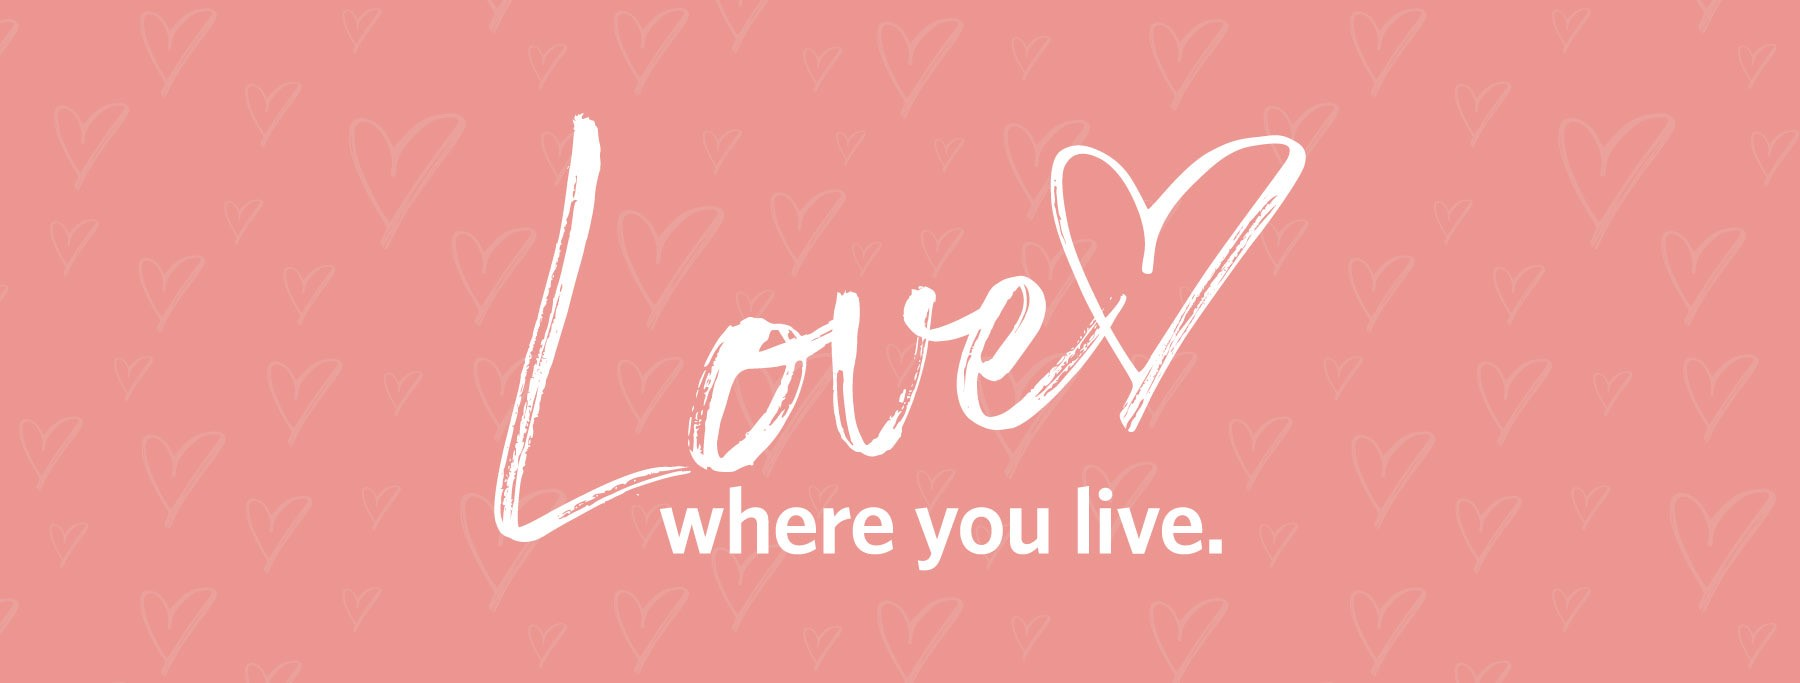 love-where-you-live-category-banner-01.jpg